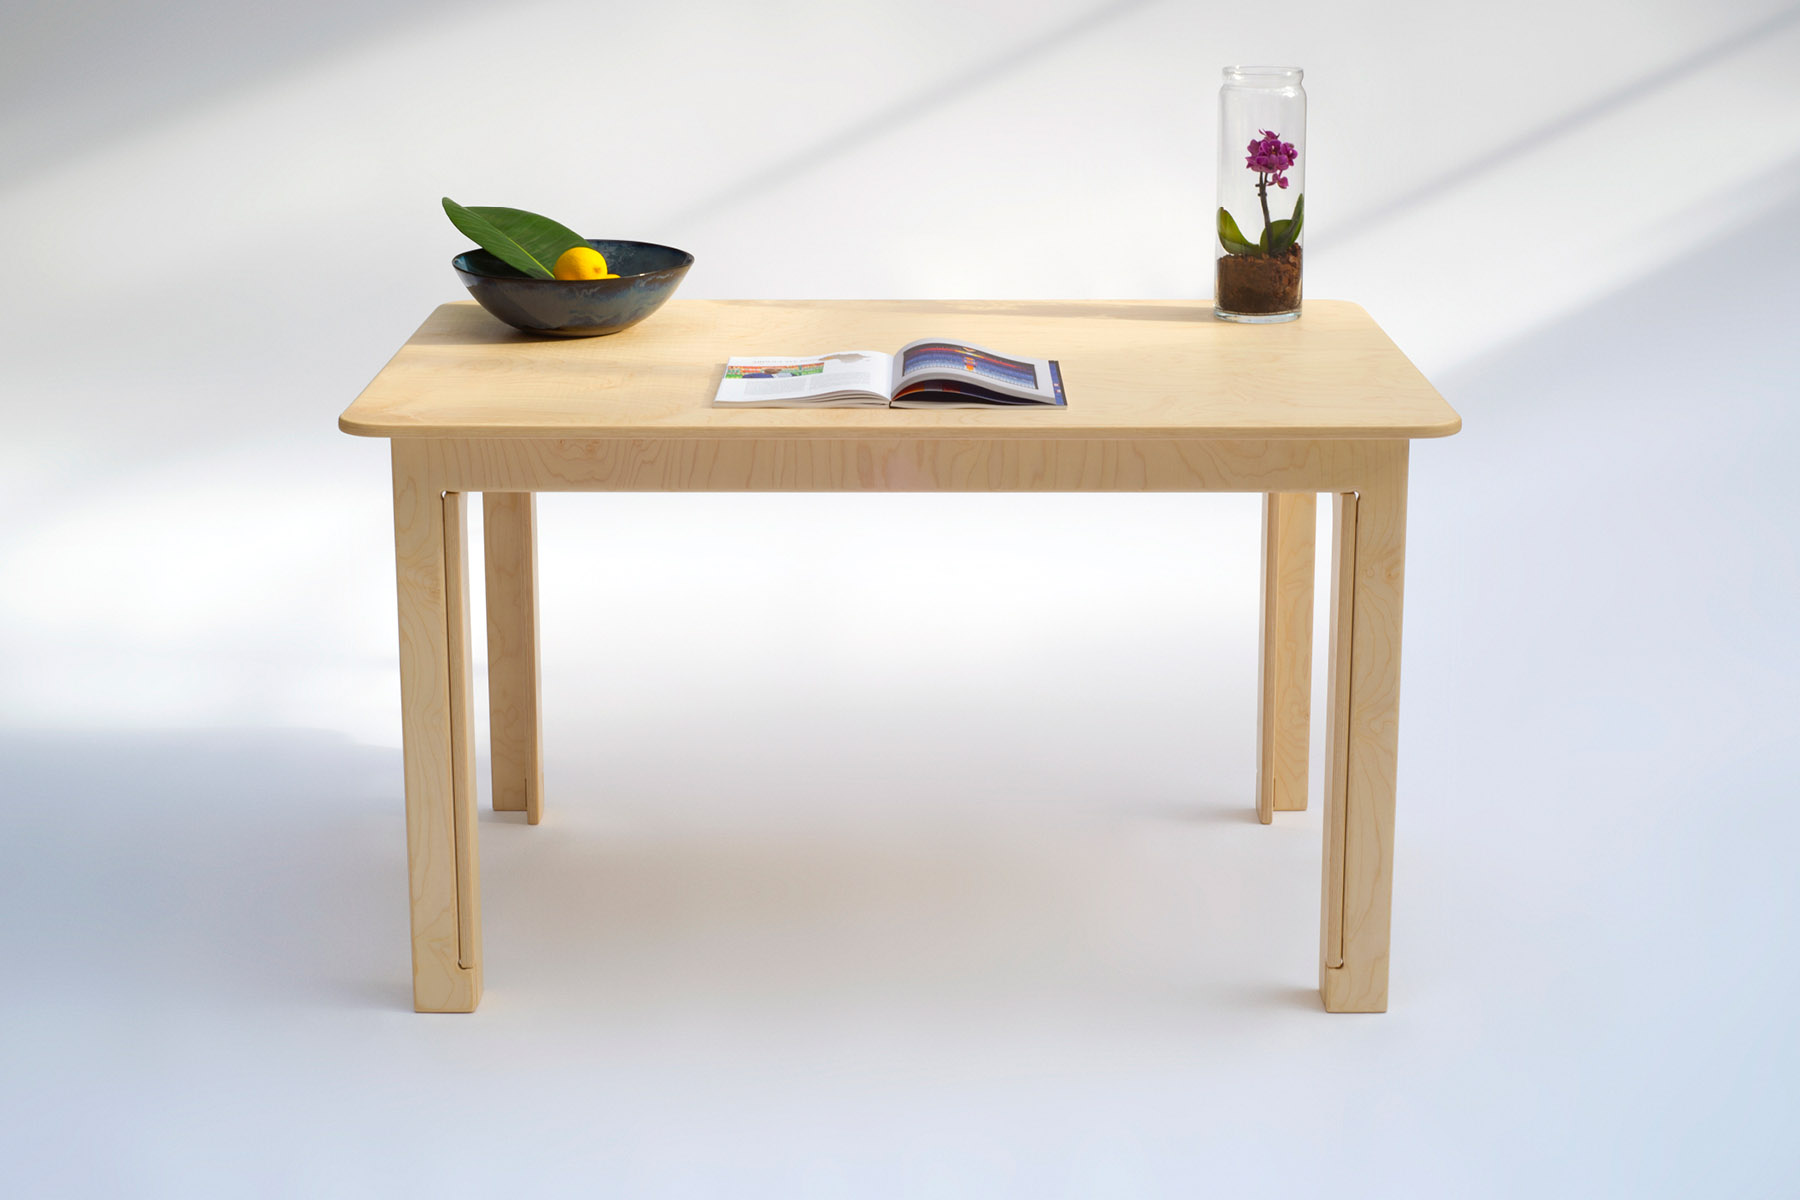 Maple table requiring no screws, small parts or tools